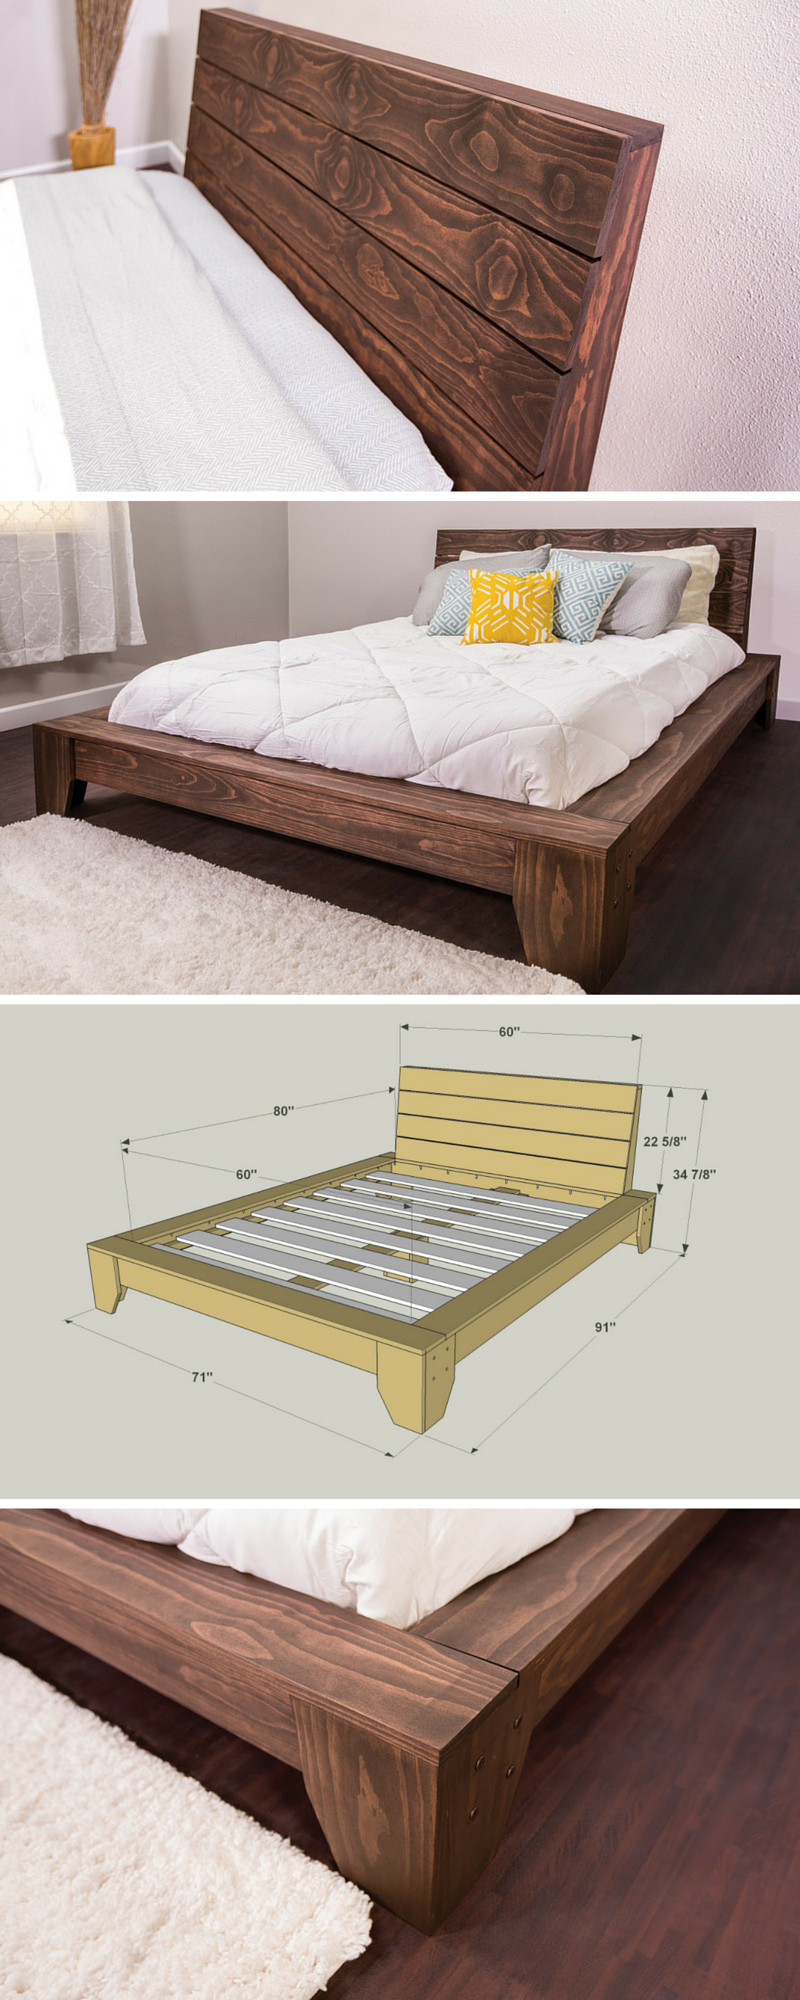 Best ideas about DIY Platform Bed Frame Queen . Save or Pin 36 Easy DIY Bed Frame Projects to Upgrade Your Bedroom Now.